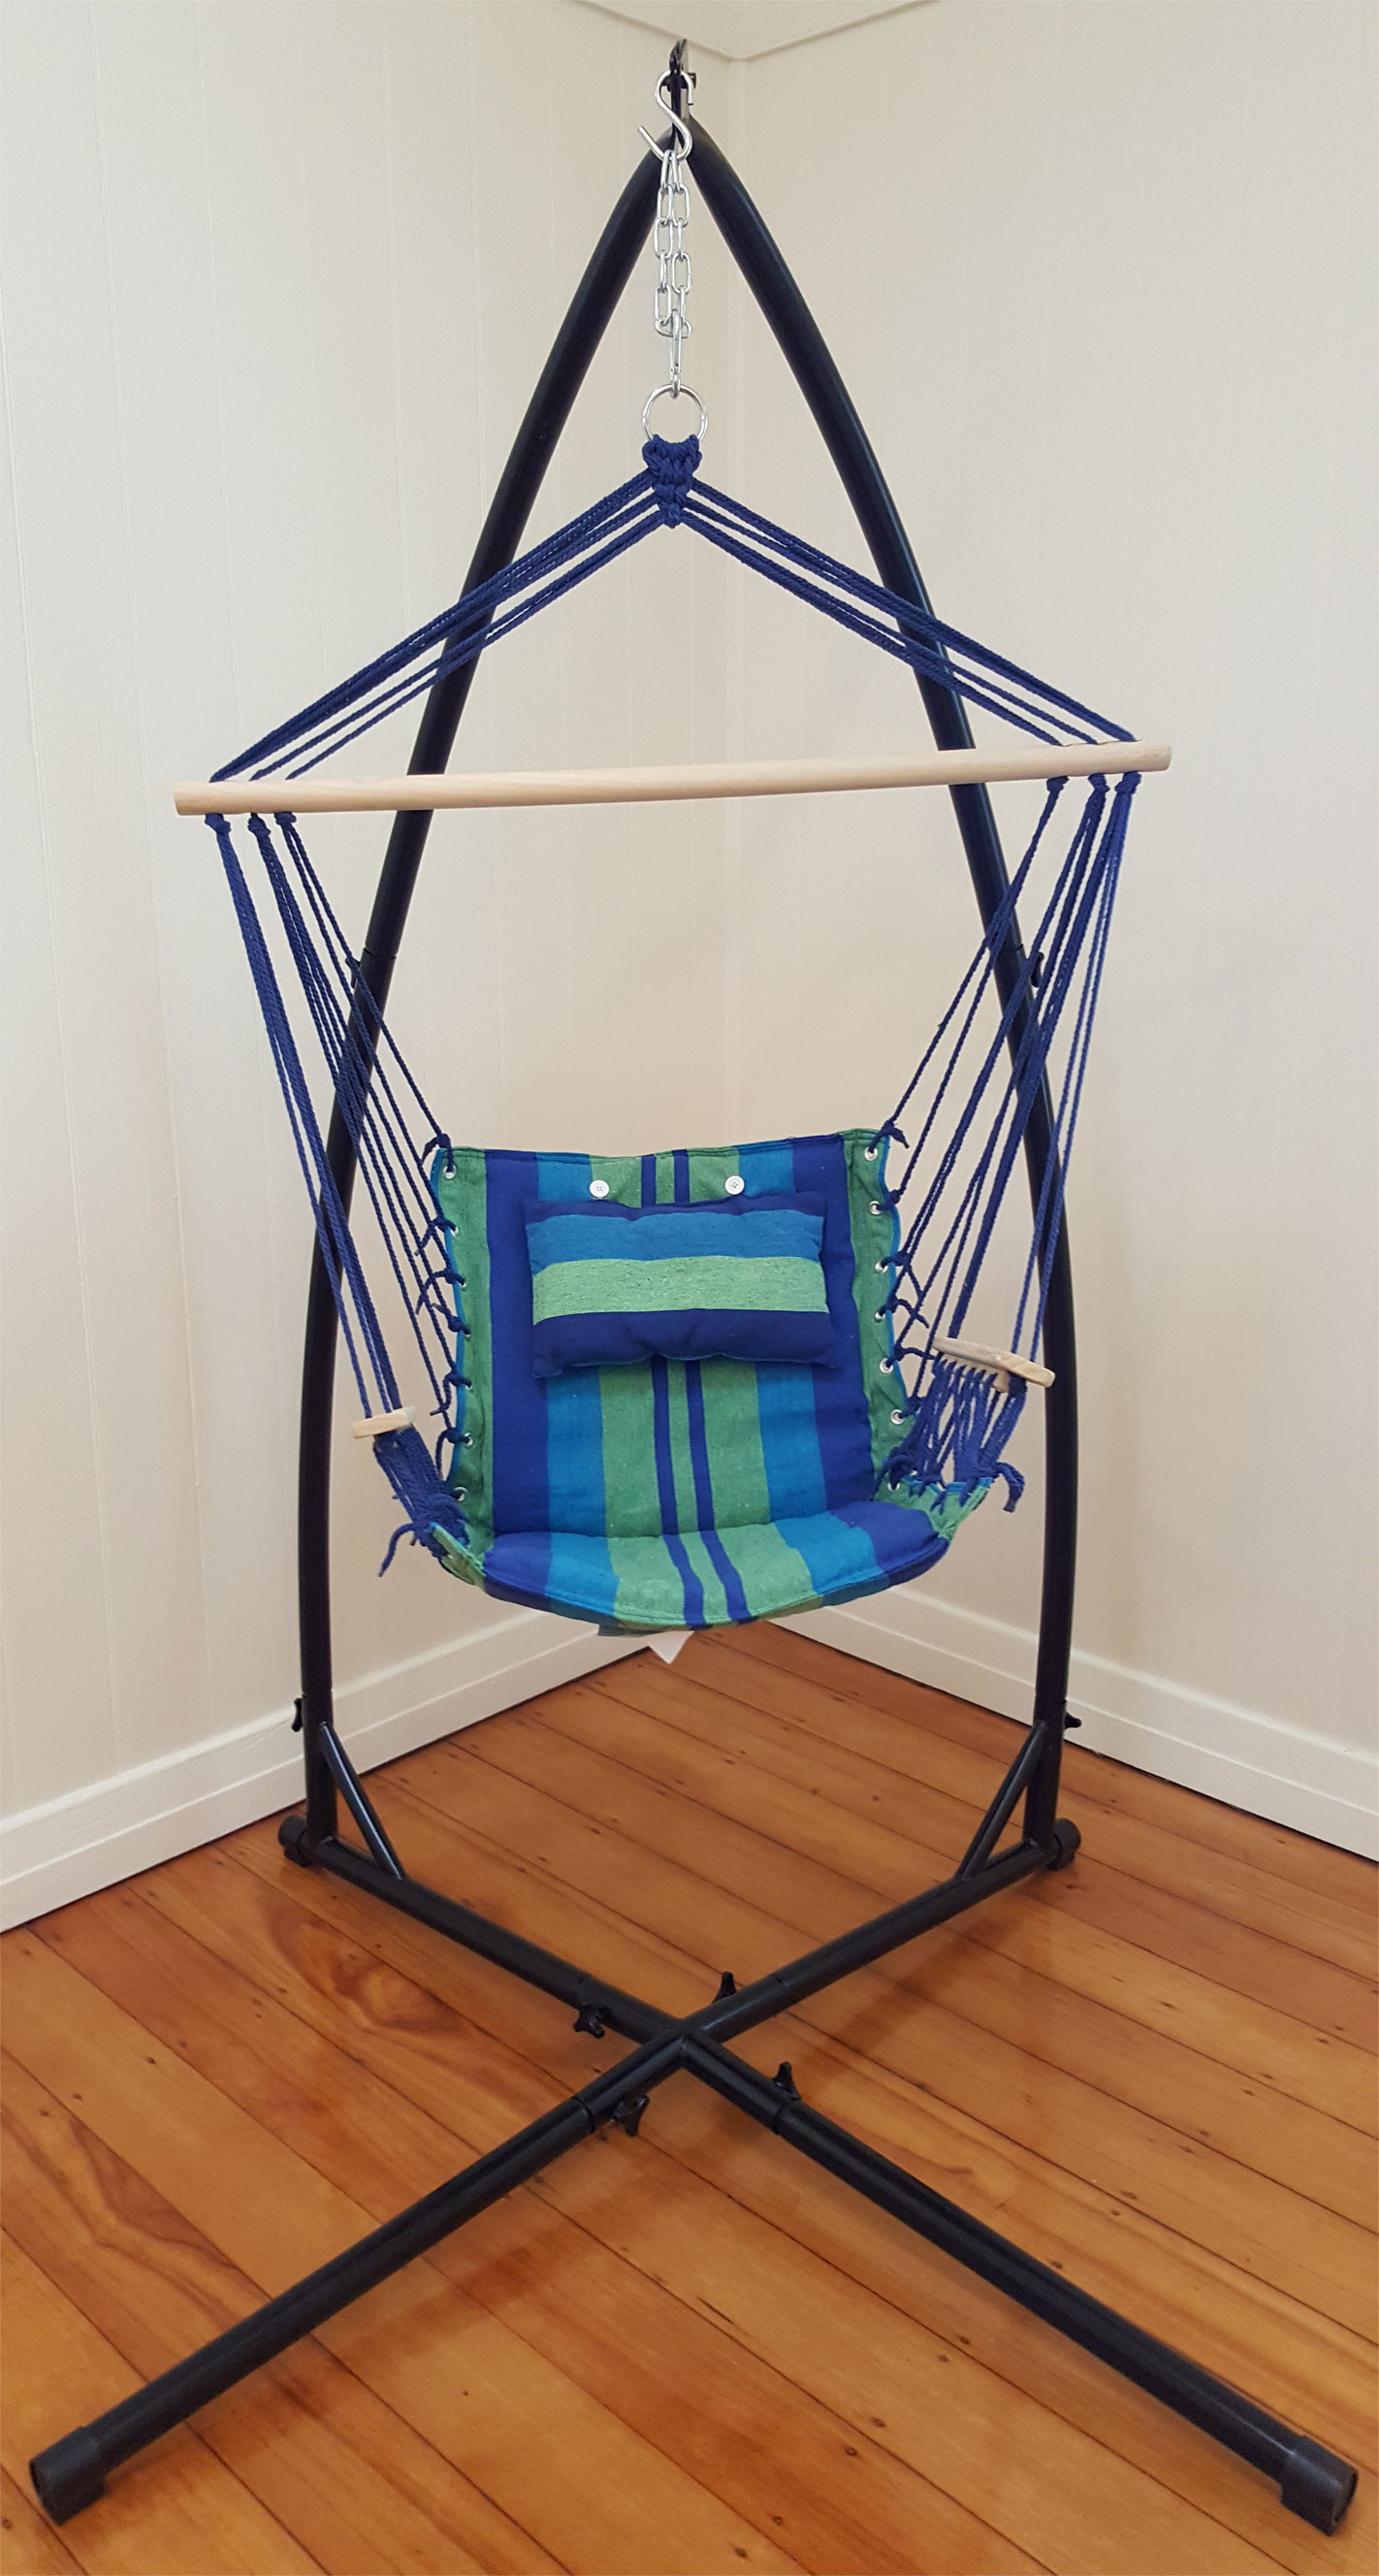 hanging chair without stand heavy duty casters blue padded hammock with wooden arm rests and pillow